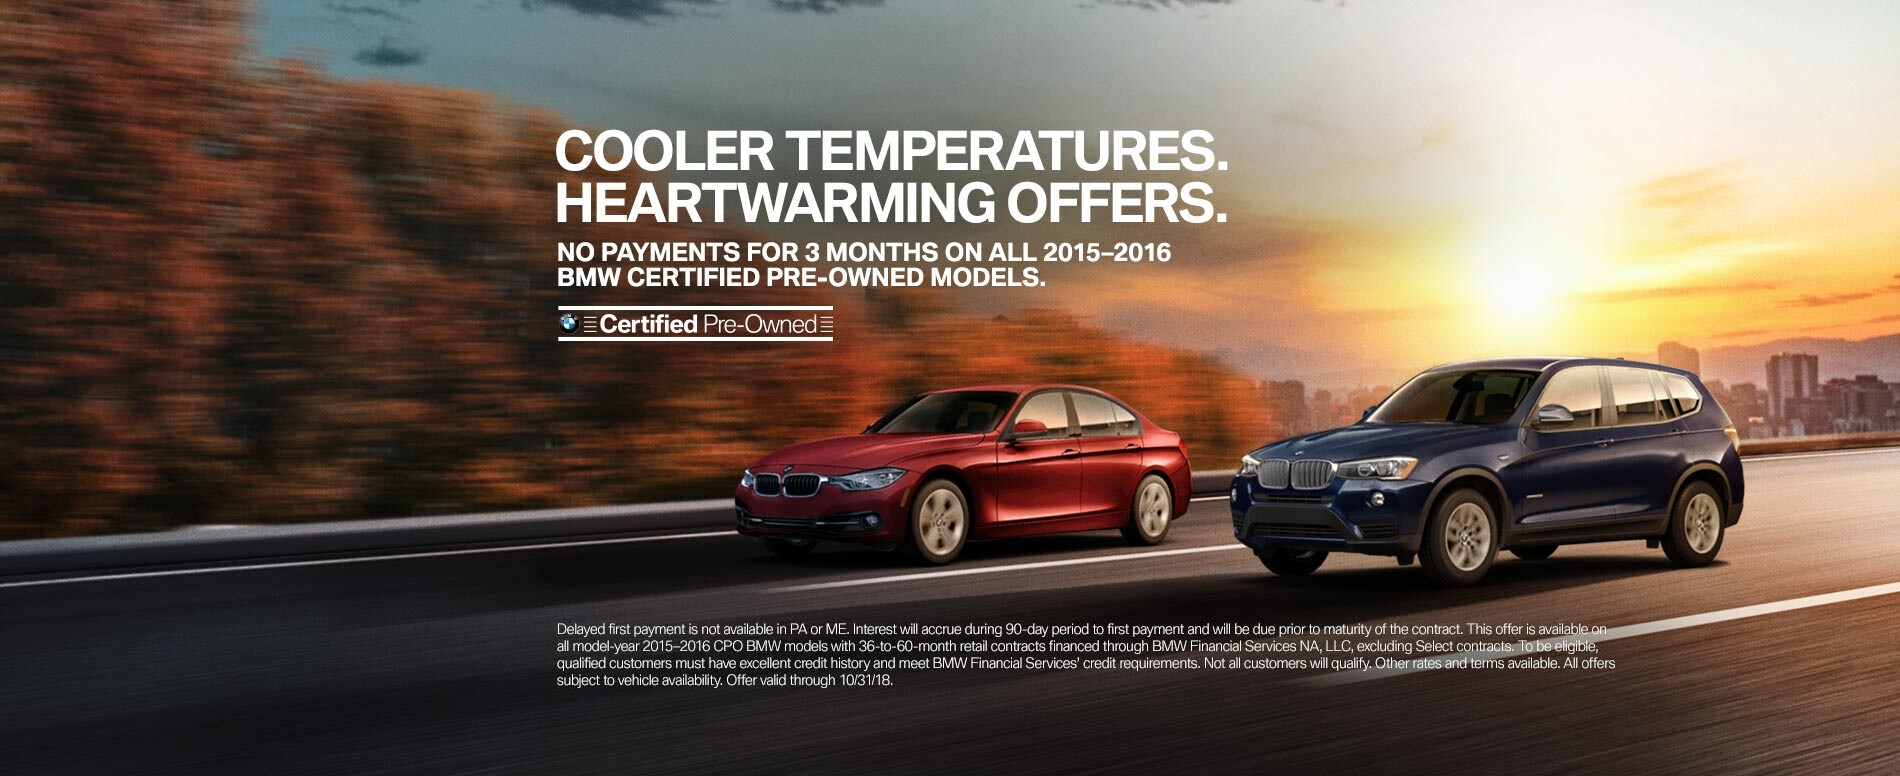 New bmw used car dealer in grand rapids mi sharpe bmw previous next solutioingenieria Image collections